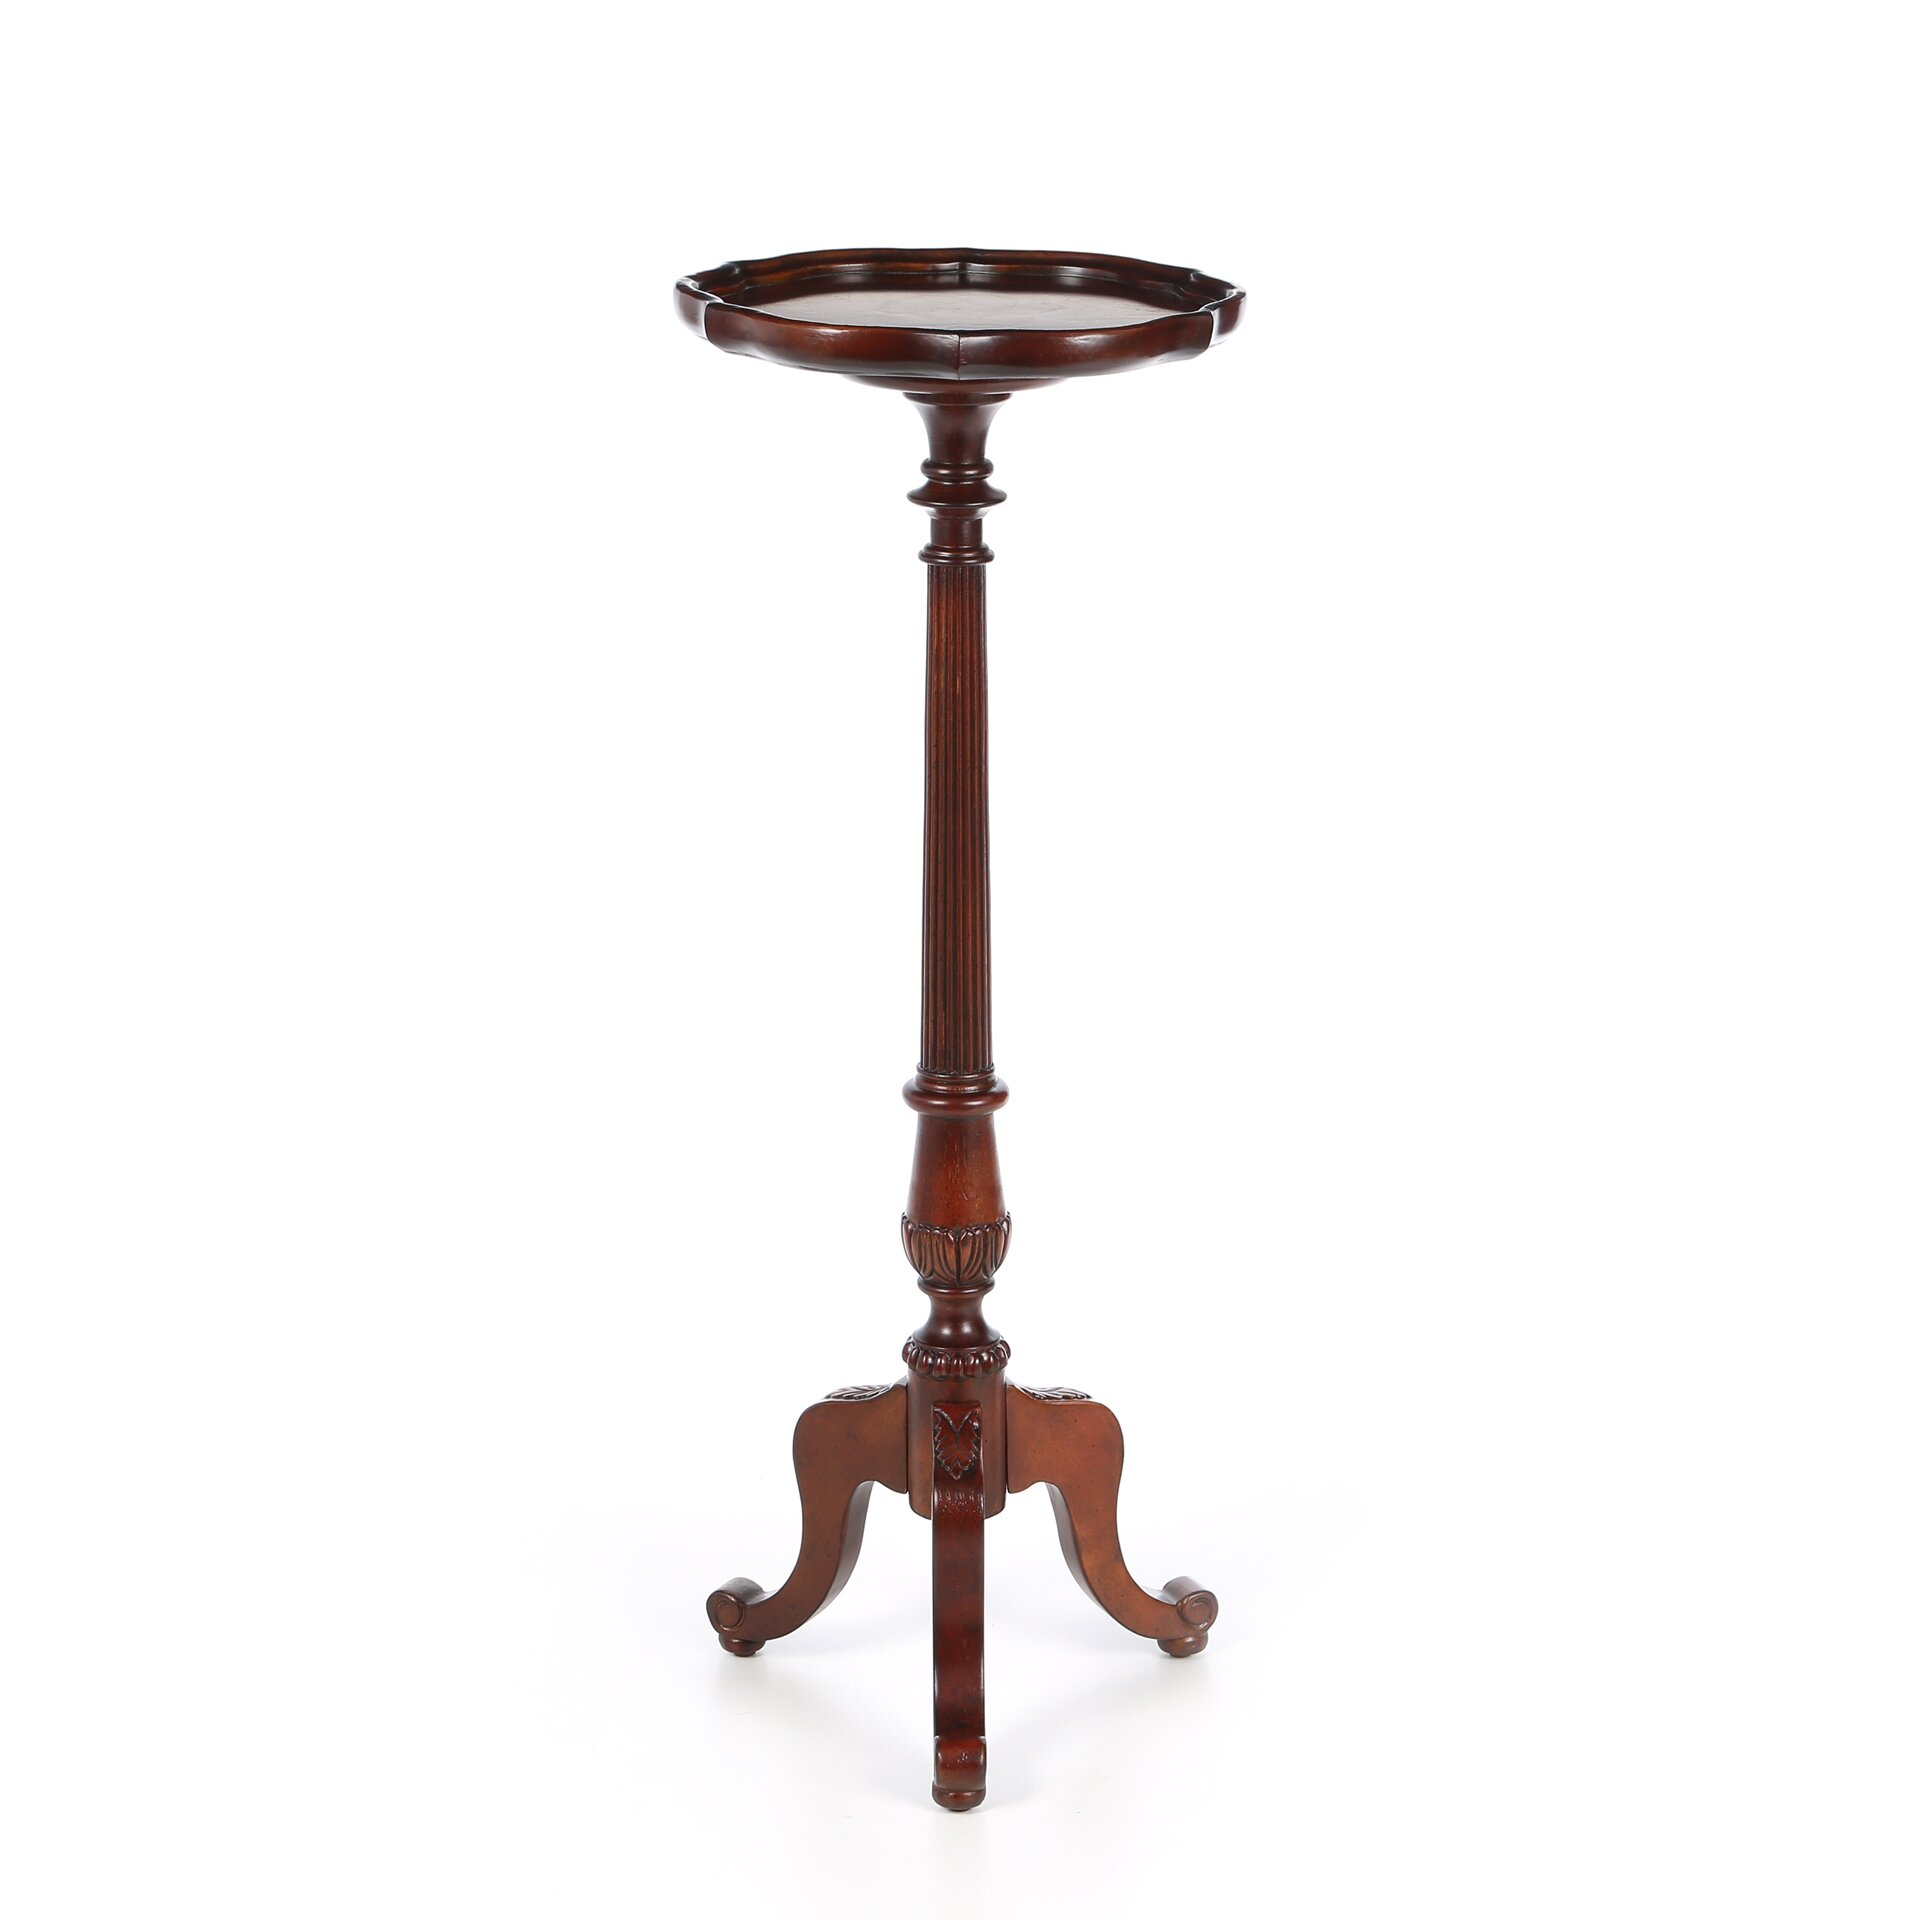 Pedestal Plant Stands ~ Darby home co elkville pedestal plant stand reviews